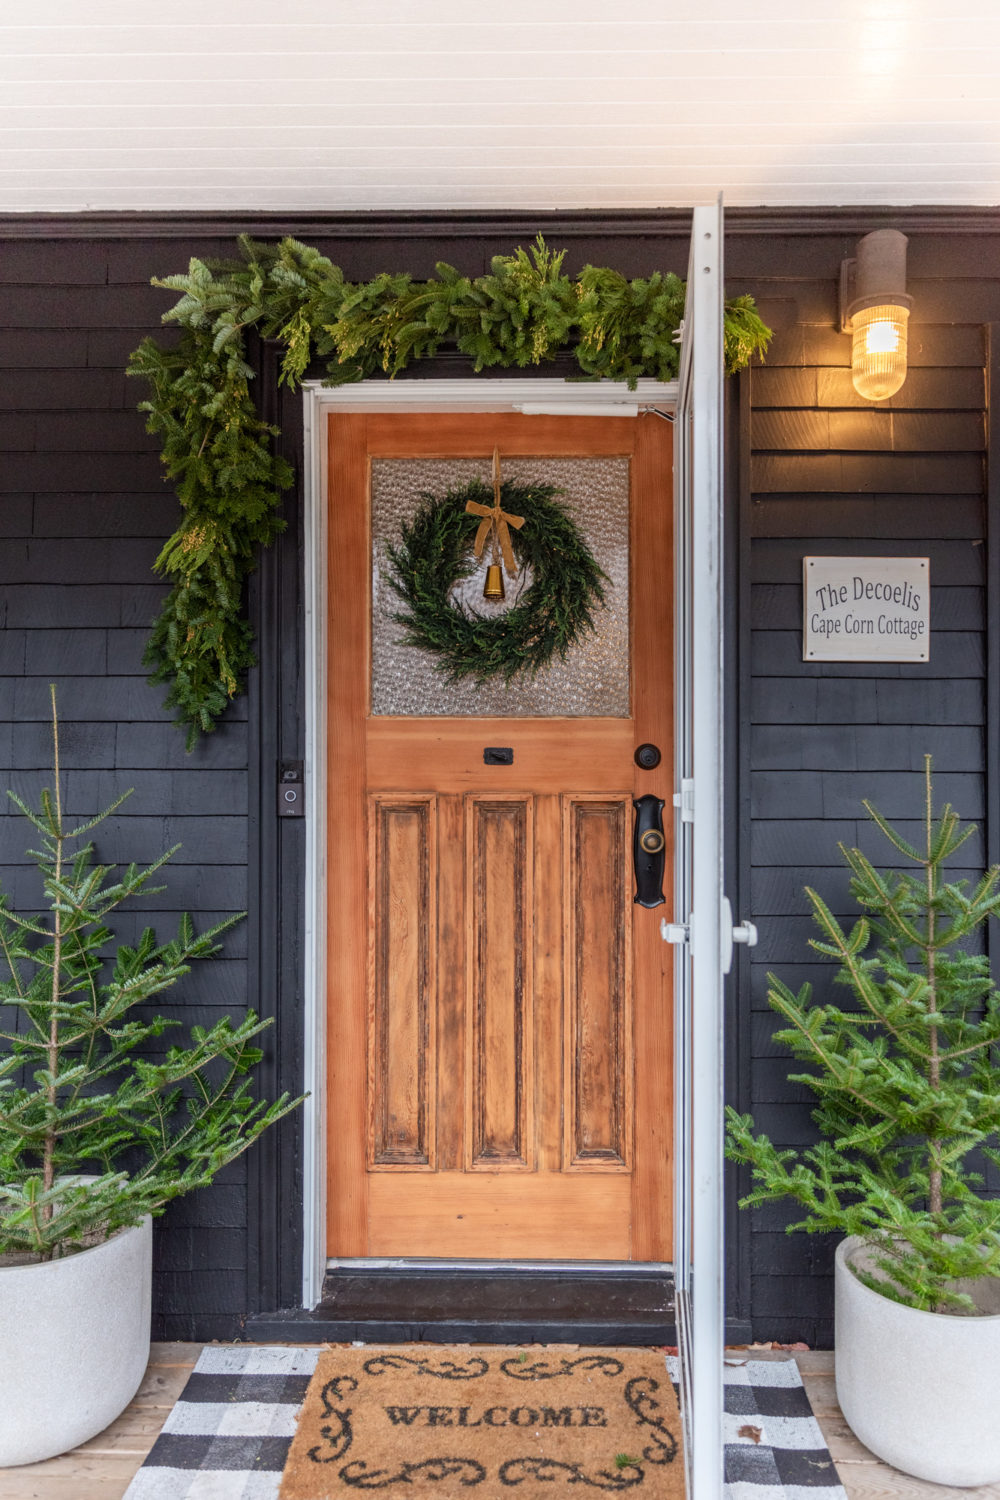 The Wild Decoelis | 2020 Holiday Home Tour | Black house with Raw wood original front door with black handle. Nautical Dock street Sconce, Trees in flower pots, garland around door and cedar wreath with twinkle lights. Buffalo plaid door mat